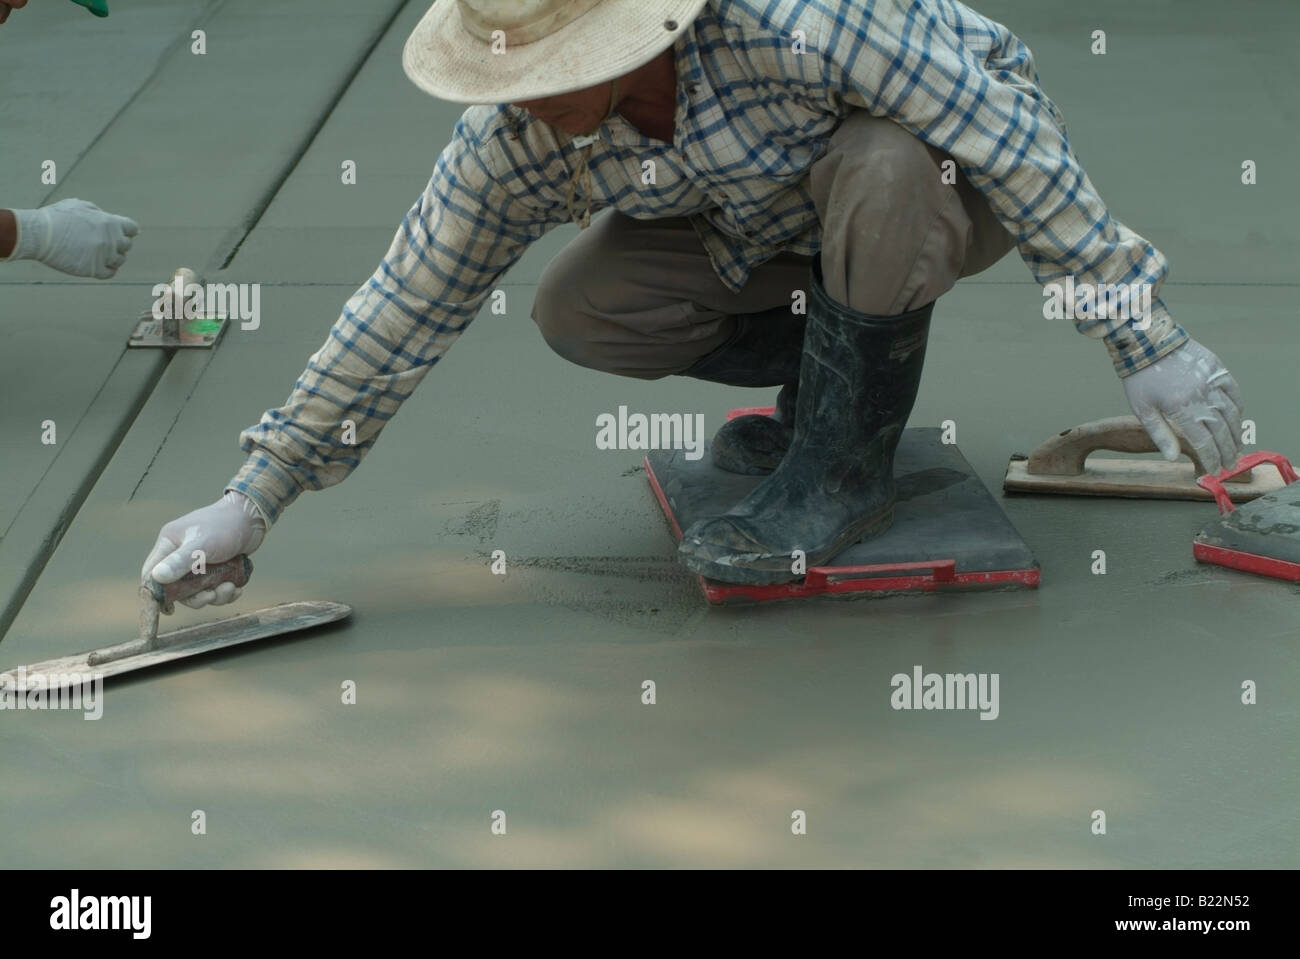 Workman leveling wet concrete with a Darby while another workman uses an edging tool to groove freshly poured concrete - Stock Image